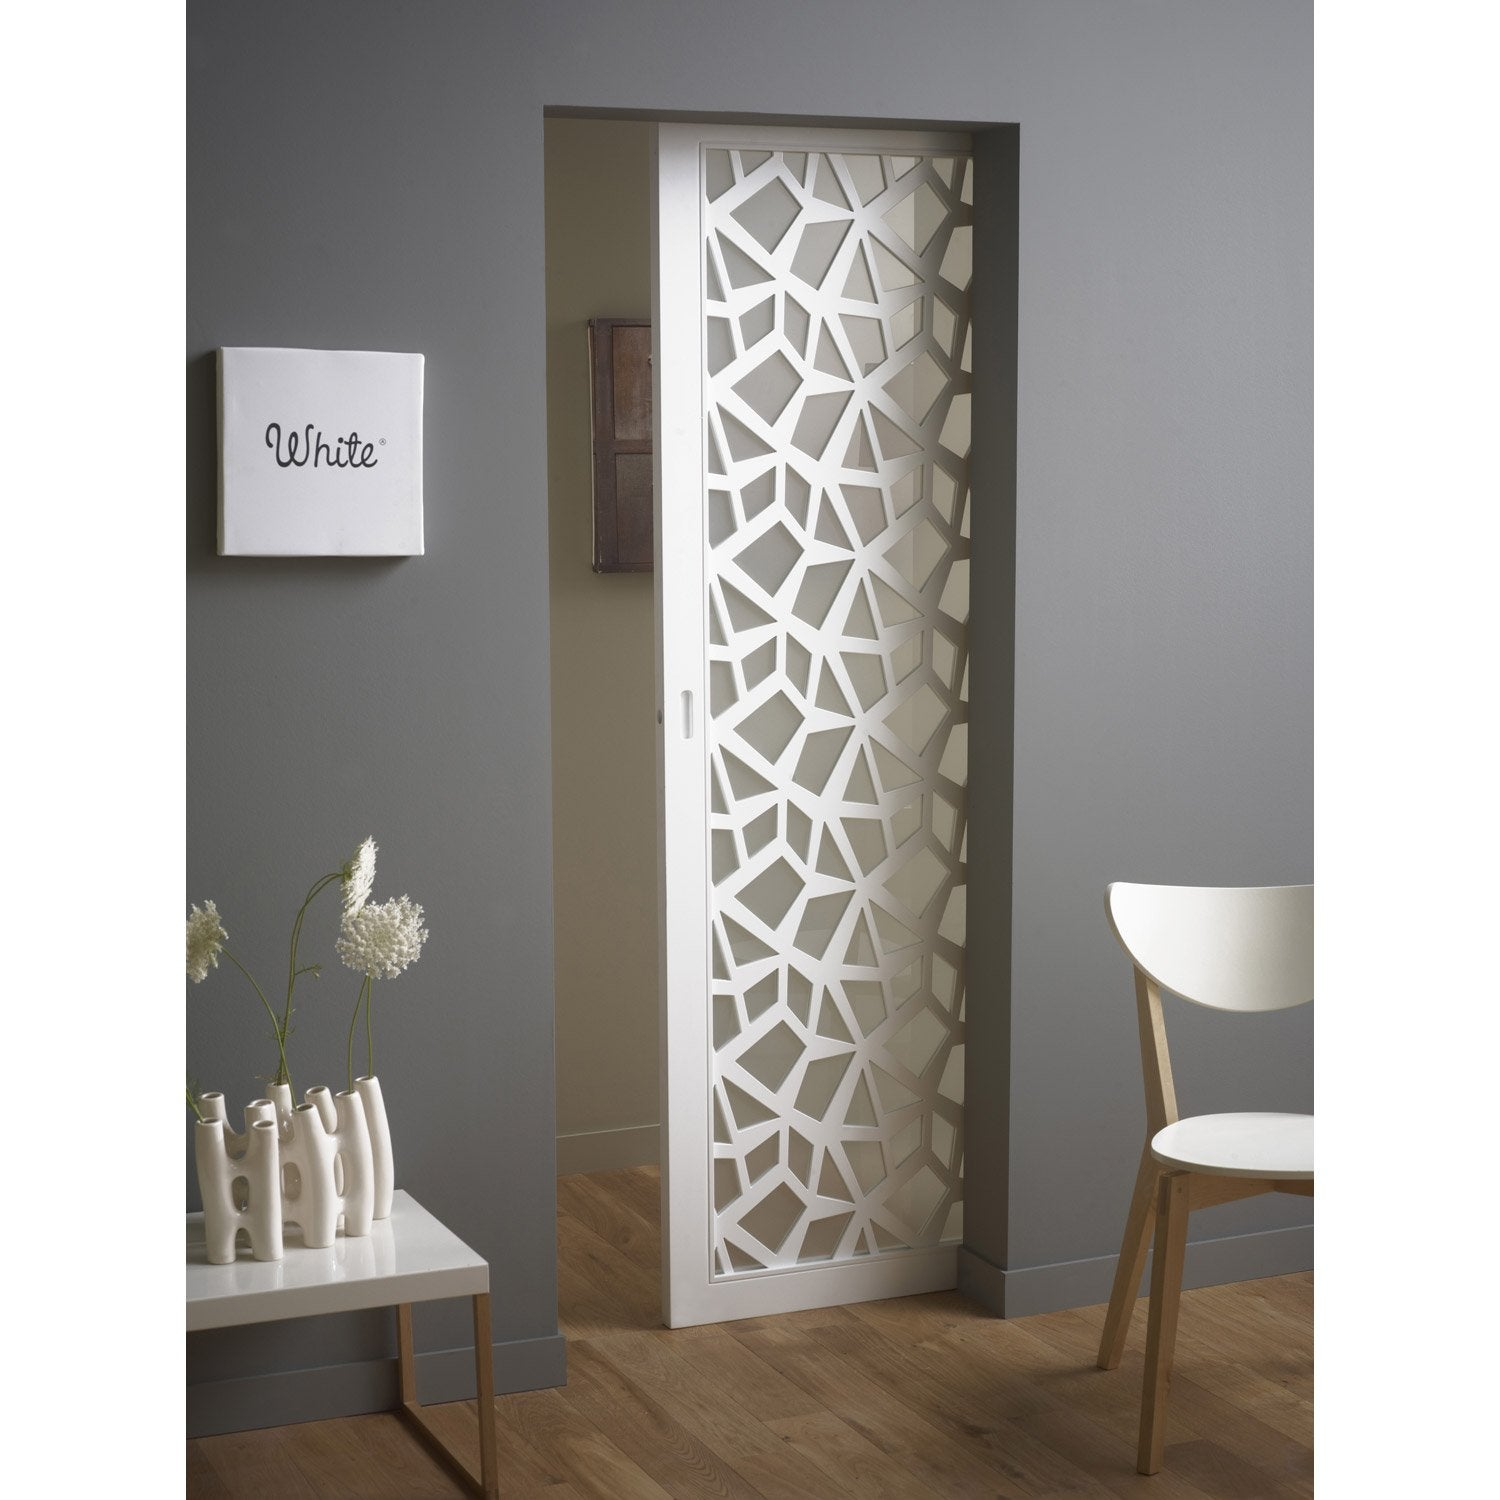 Ensemble porte coulissante crash verre et mdf laqu for Porte coulissante wc